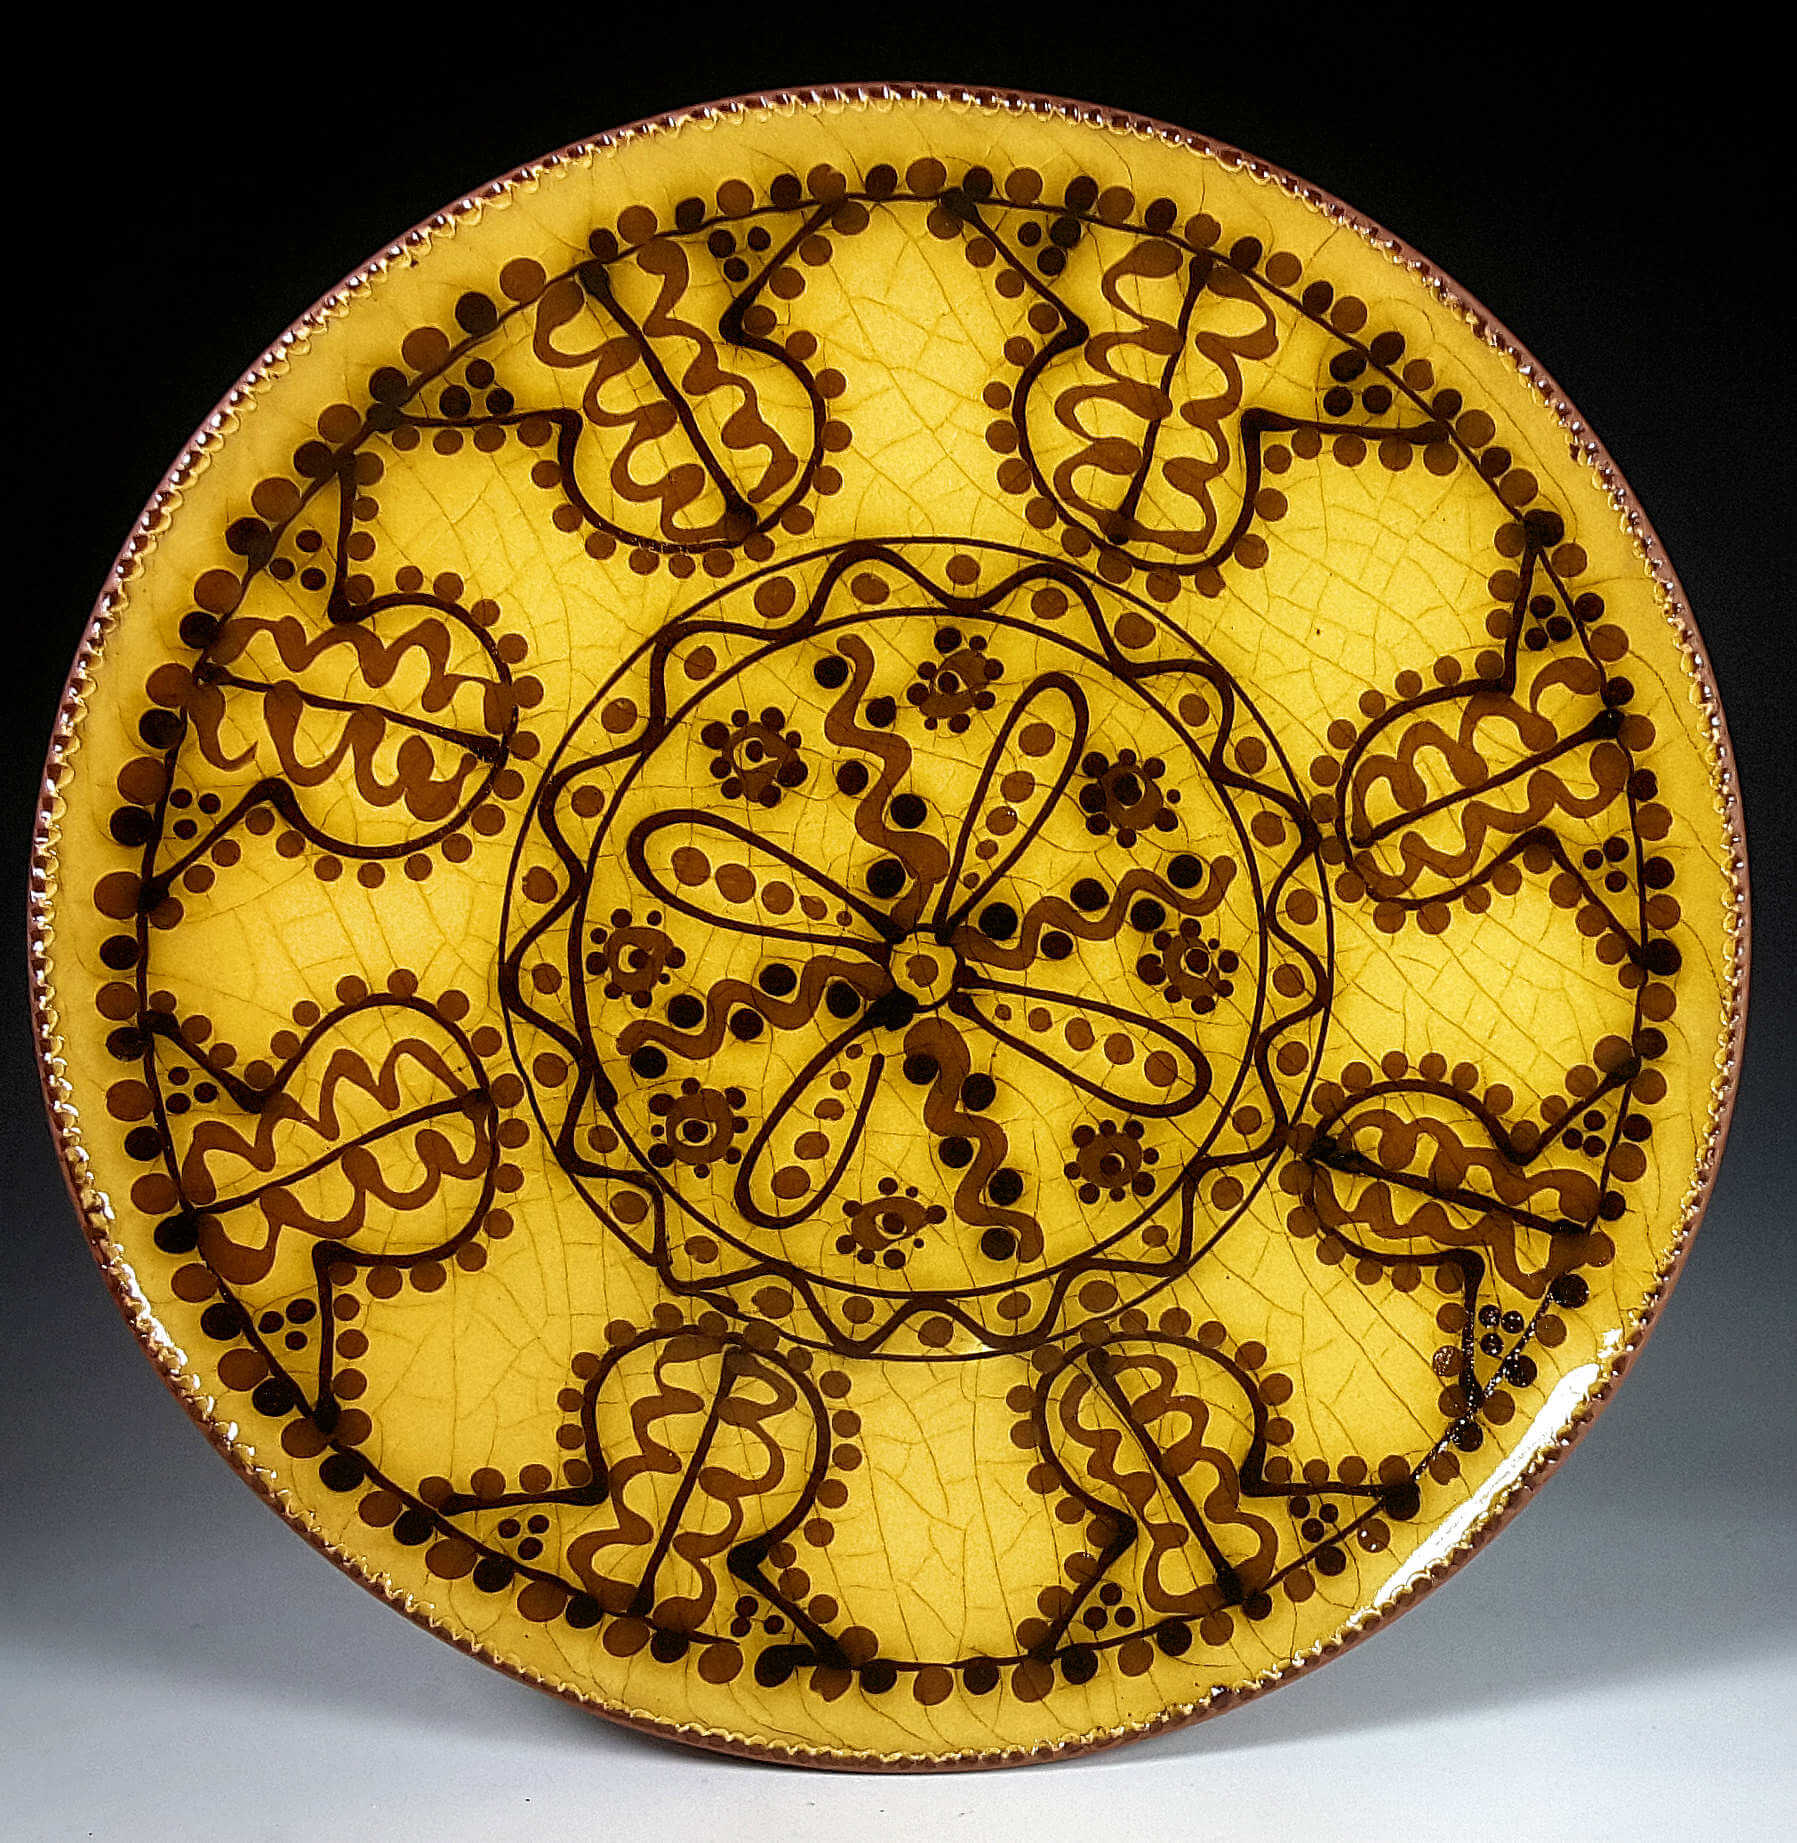 Round Plate, Yellow Slipware, Sawtooth